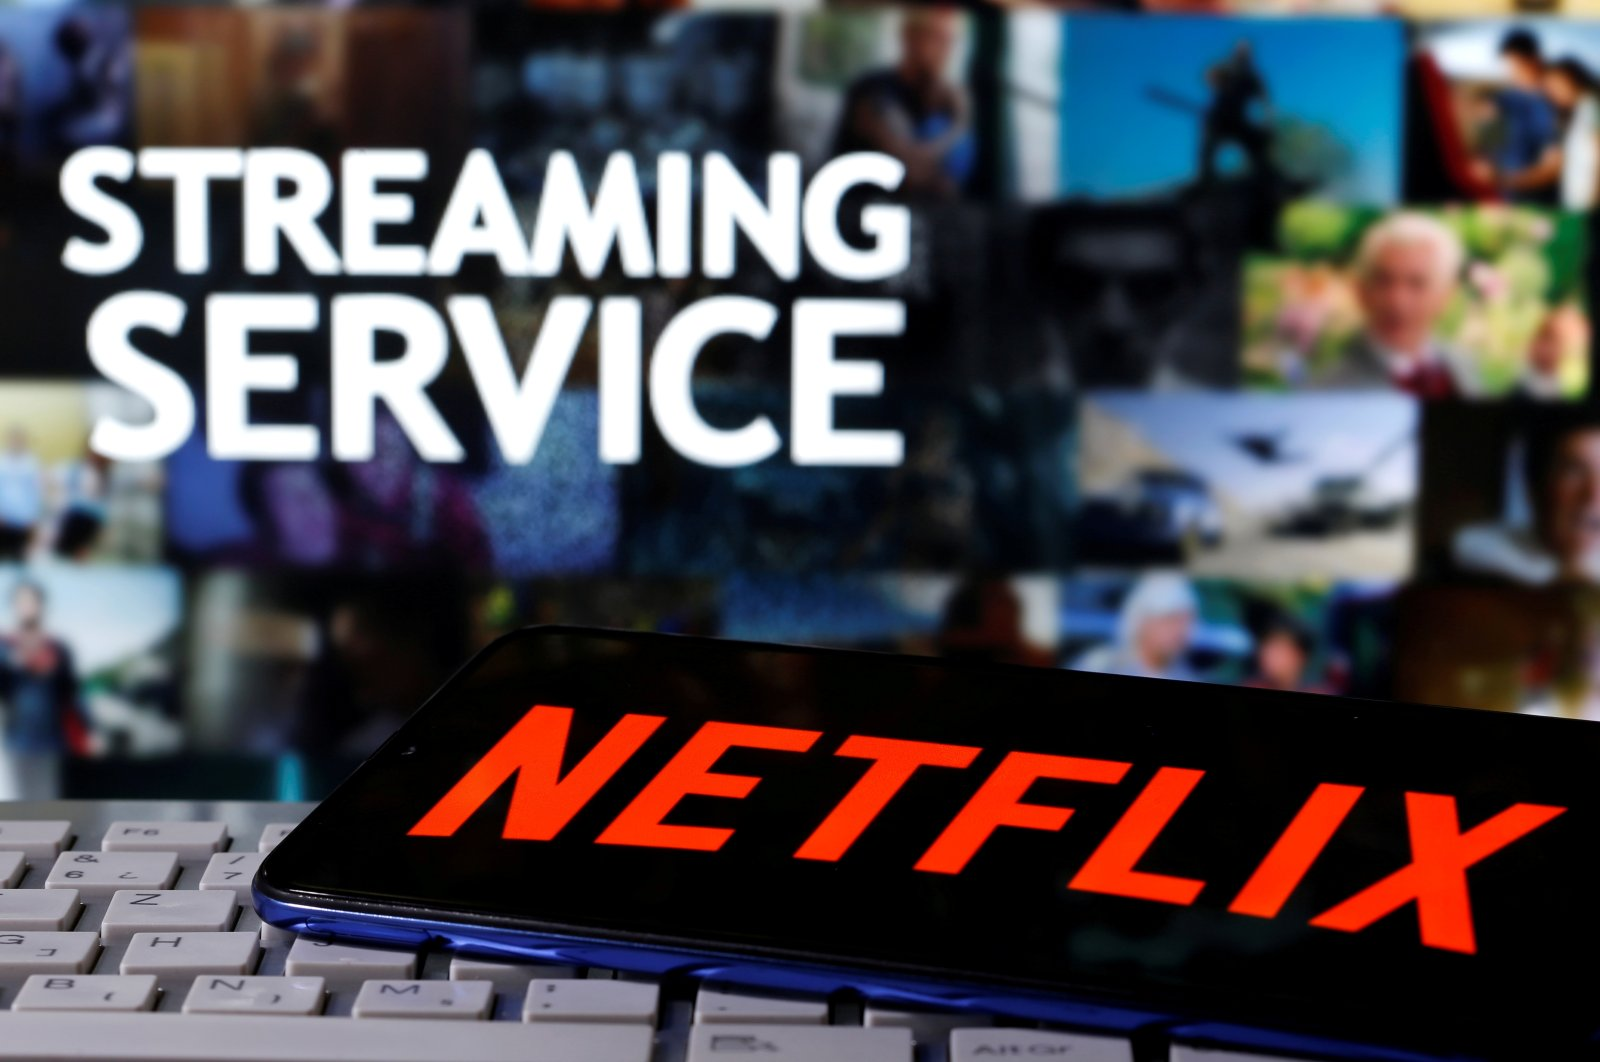 """A smartphone with the Netflix logo is seen on a keyboard in front of displayed """"Streaming service"""" words in this illustration taken March 24, 2020. (Reuters Photo)"""